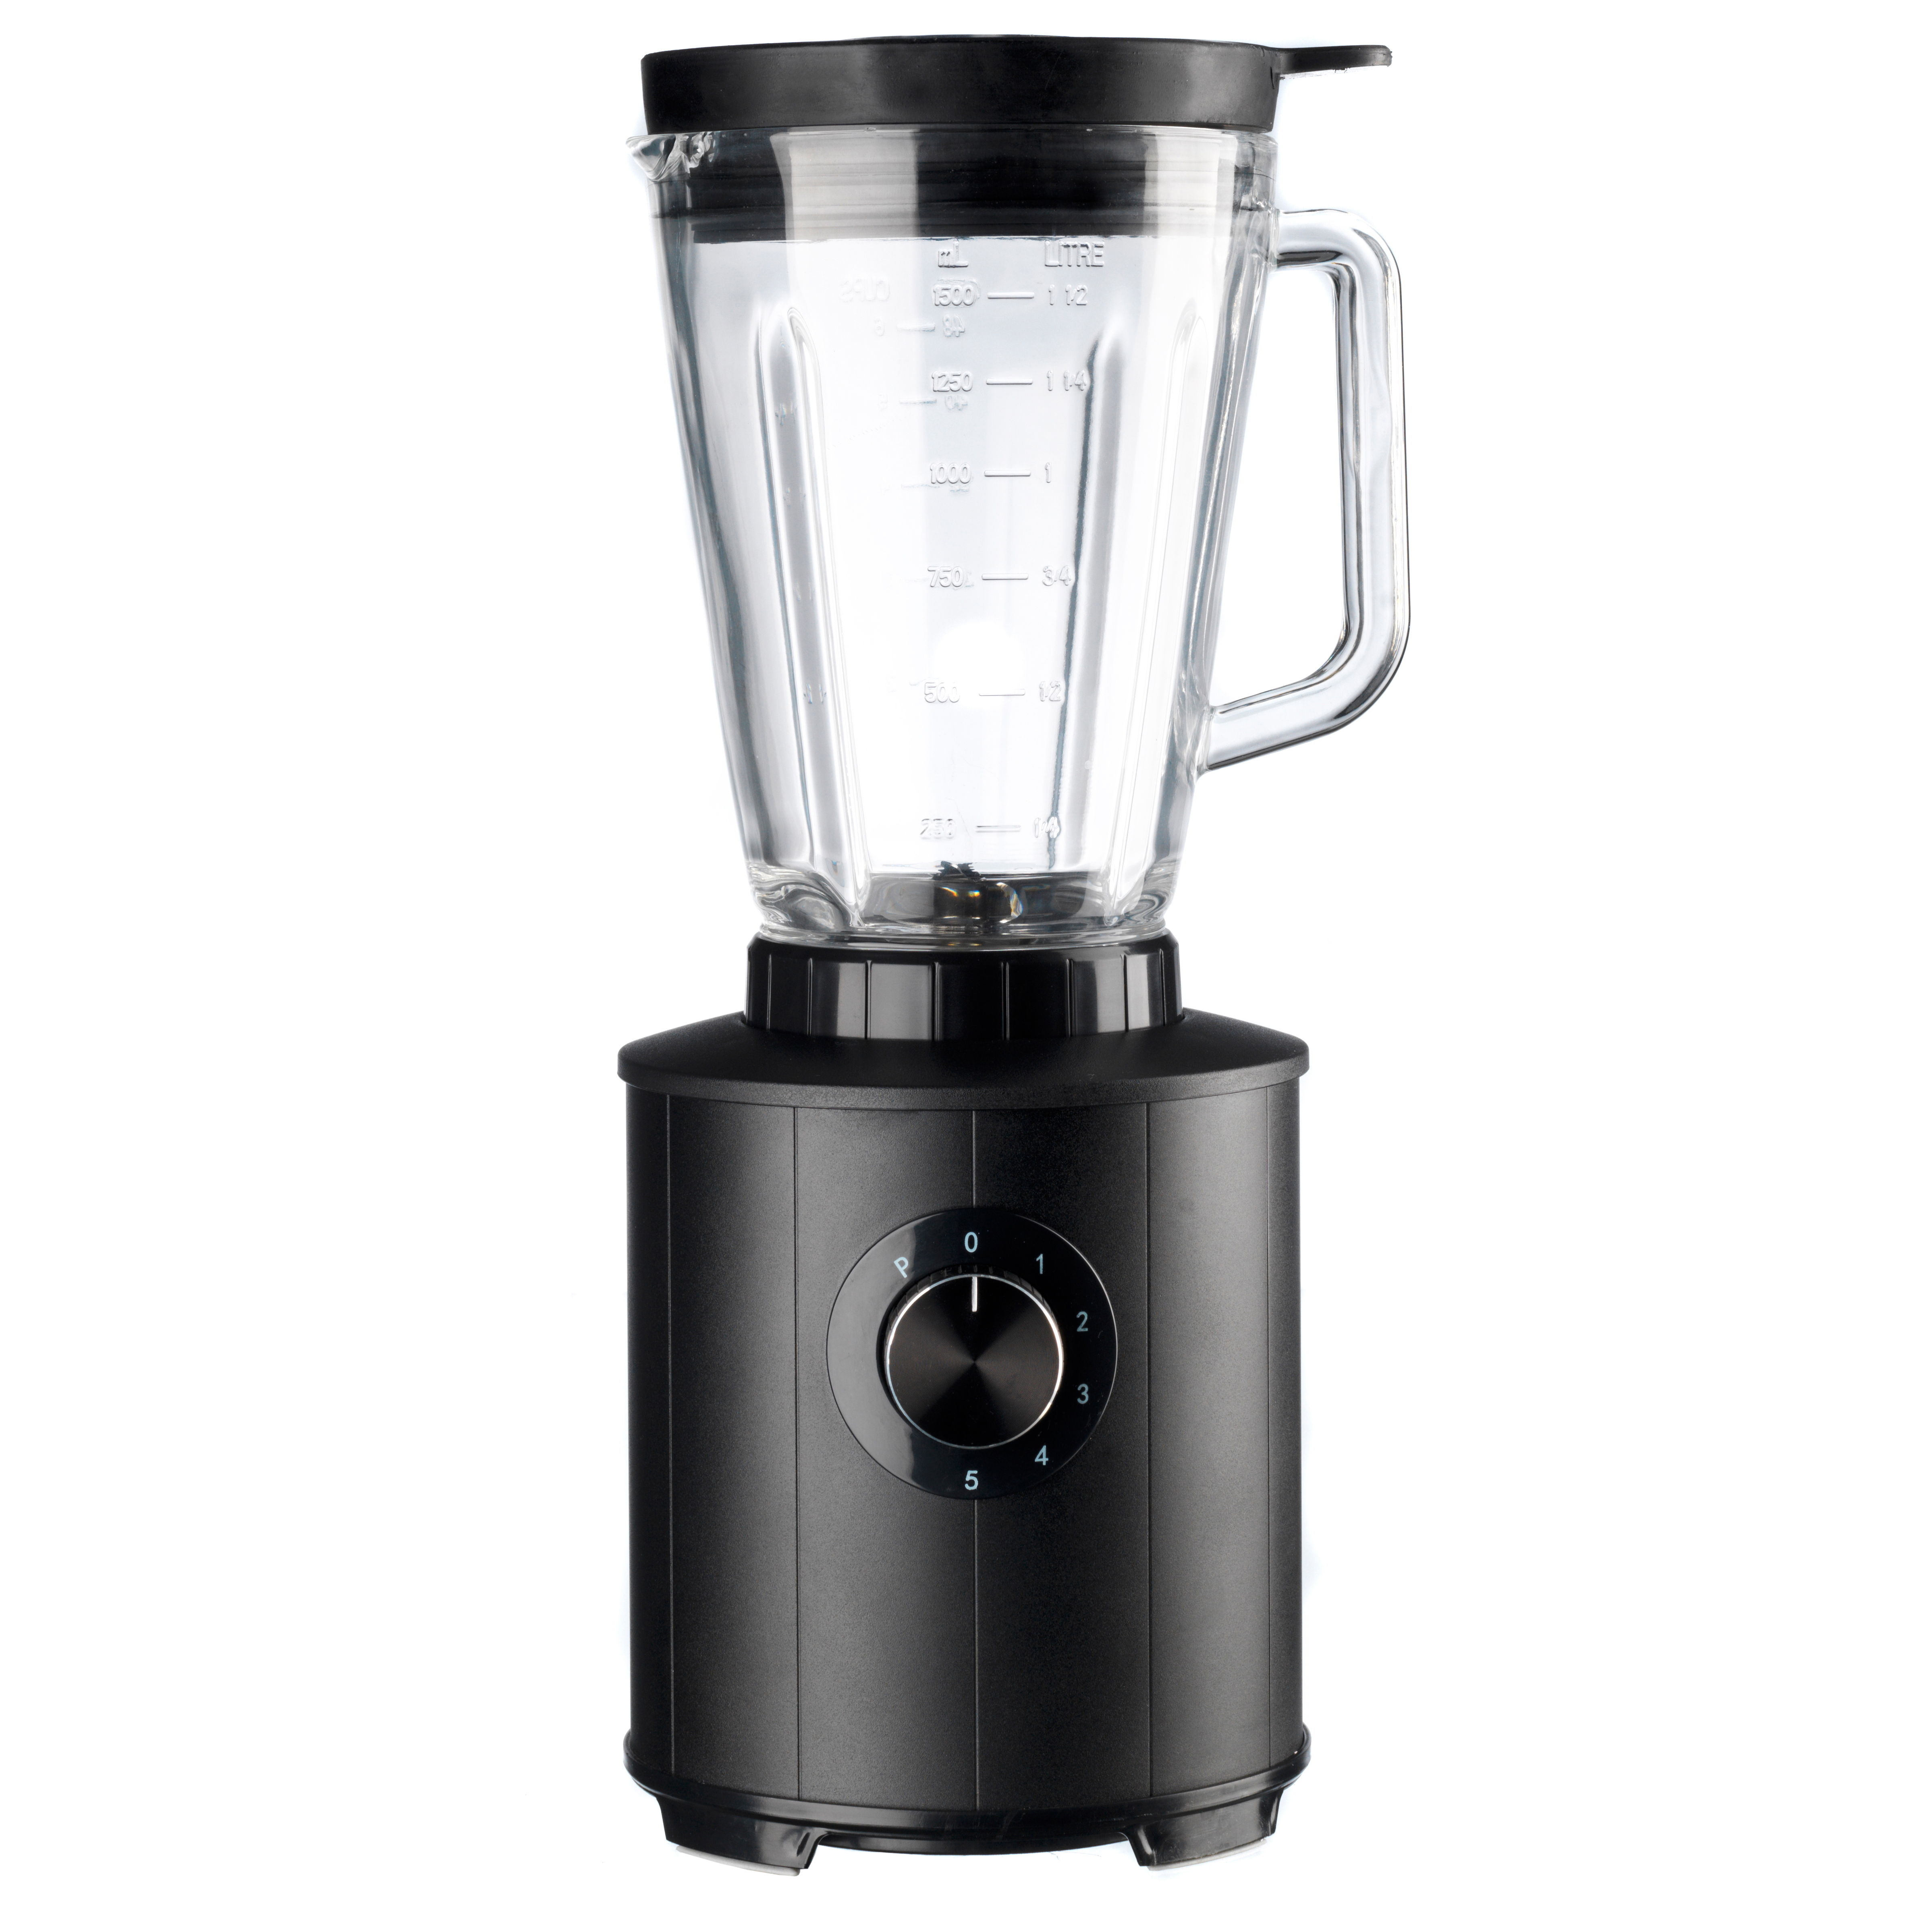 Image of   Coop blender - 1000 W